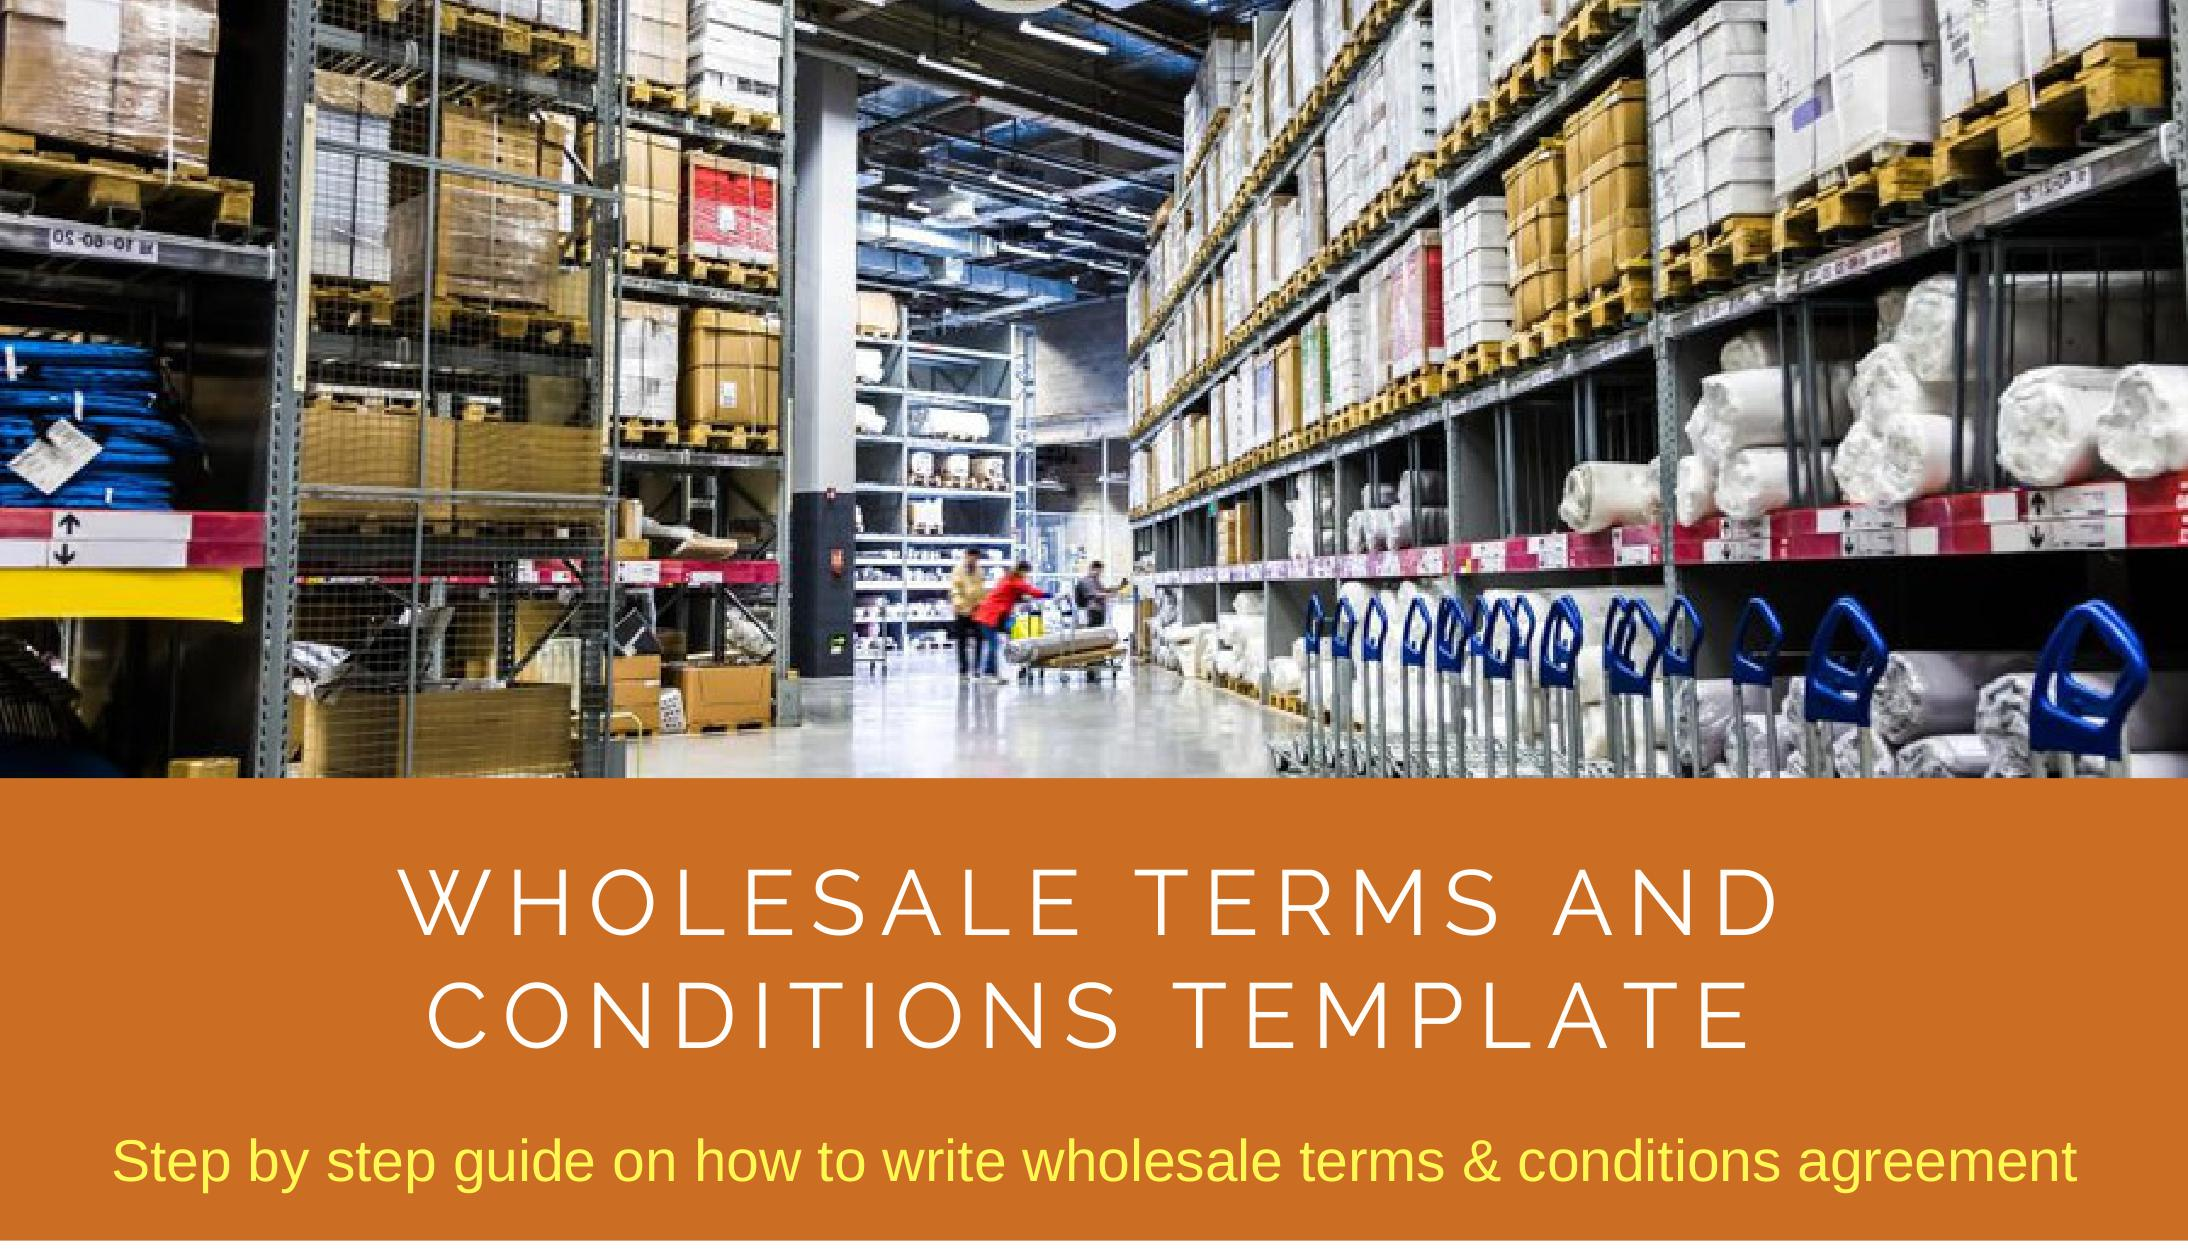 wholesale terms and conditions template - wholesale terms and conditions template download